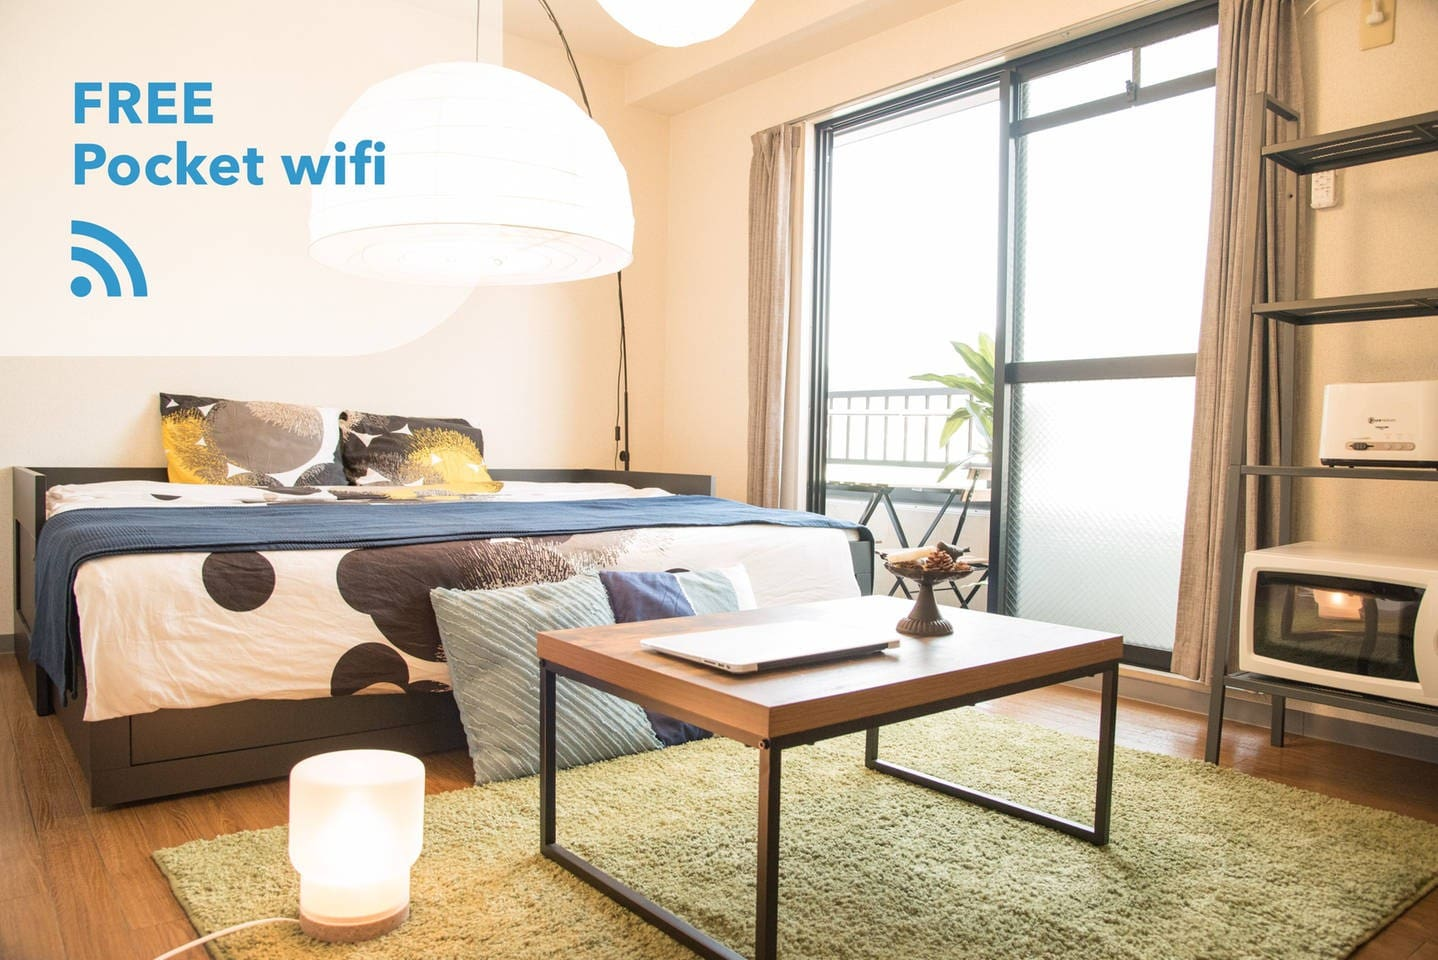 Small cozy room 402 walk 7min to Gion + Pocket wifi. The room size is 15 square meters. There's a double bed(140×200cm) and a mattress(single).